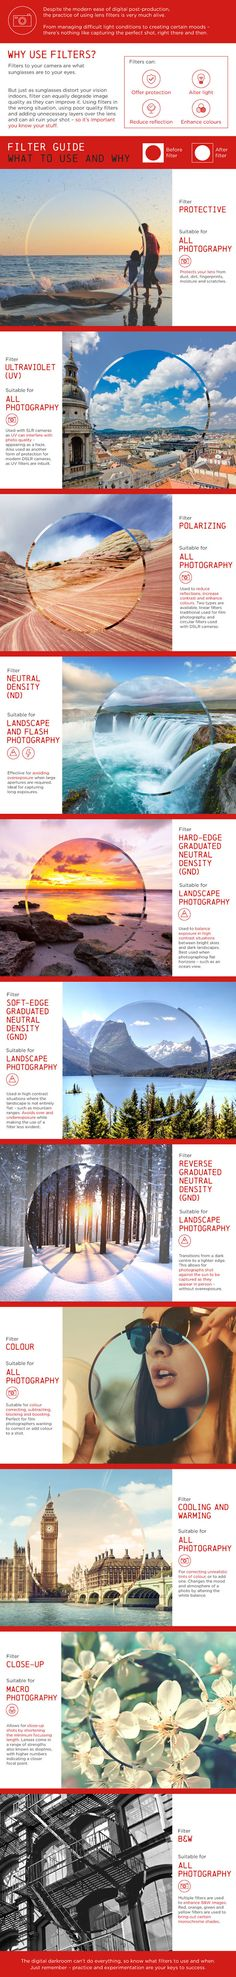 Landscape Photography Tips: Photography Filters - A Cheat Sheet Photography Cheat Sheets, Photography Filters, Photography Basics, Photography Lessons, Photography Editing, Photography Business, Photography Tutorials, Digital Photography, Travel Photography